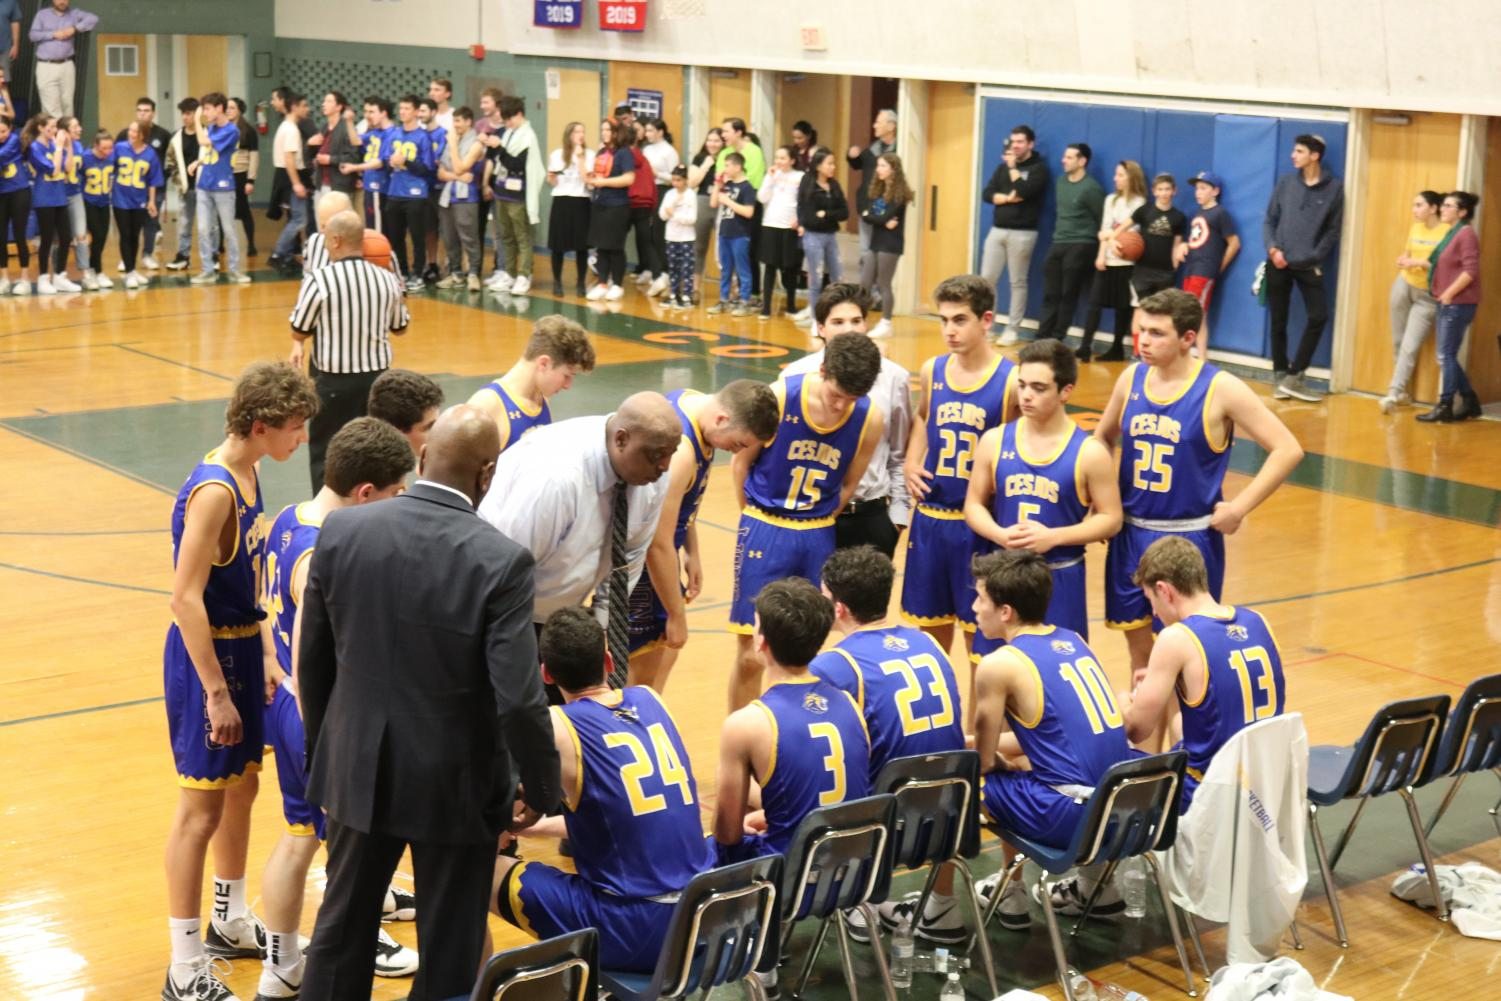 The Lions huddle with their head coach, David McCloud.